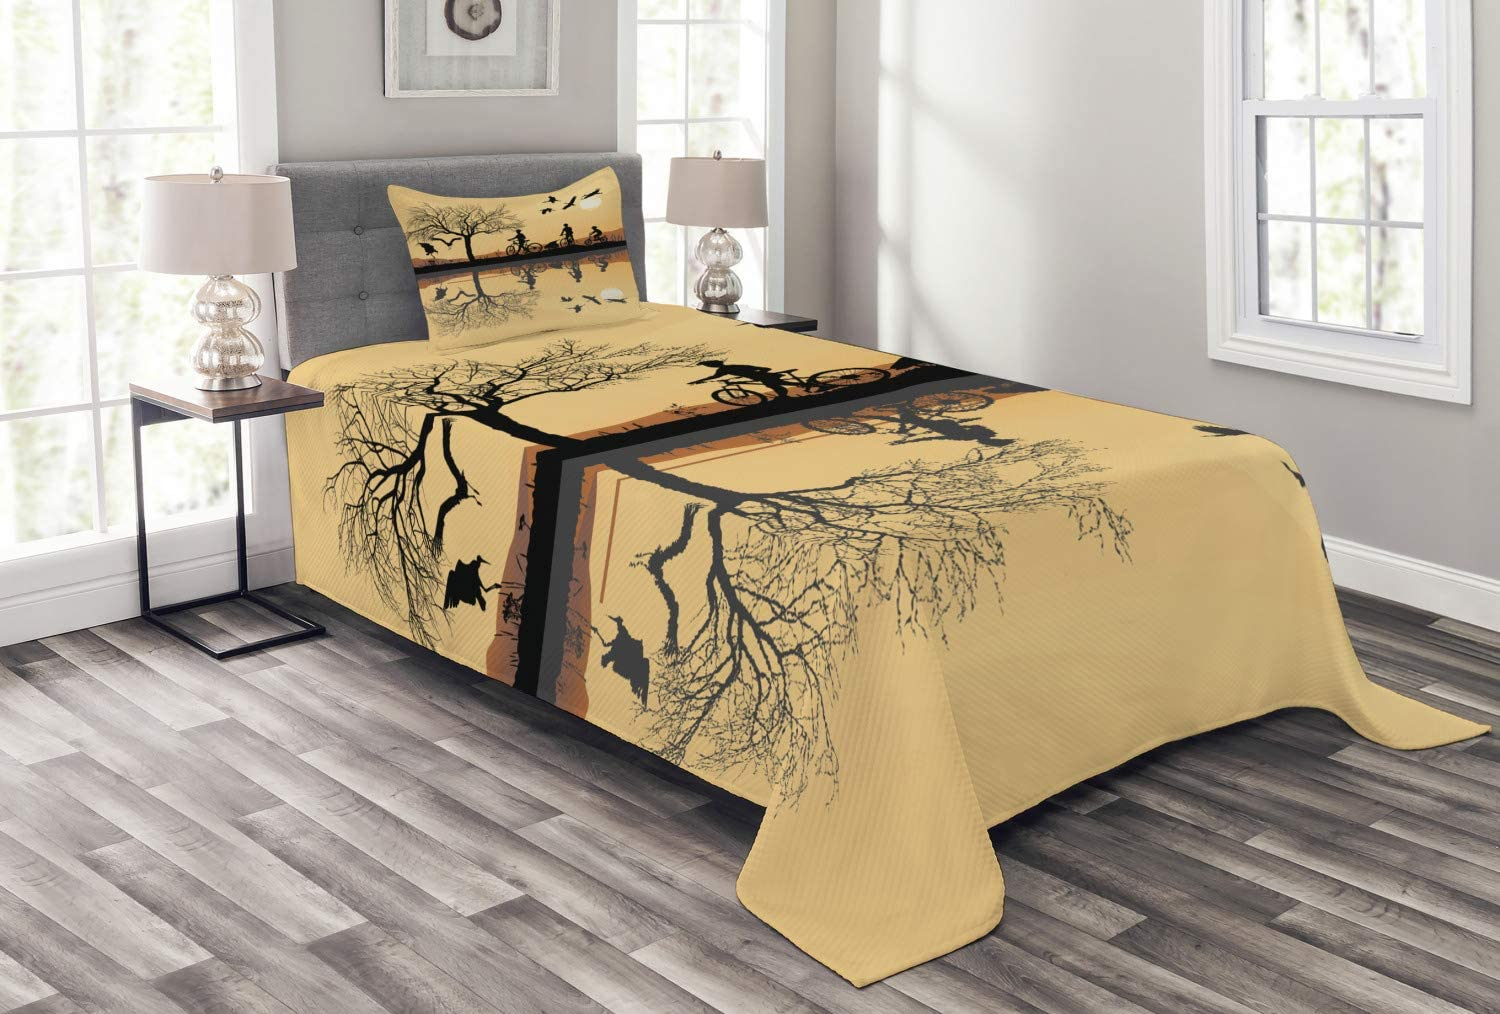 Ambesonne Mountain Bedspread Silhouette Ranking TOP11 5 ☆ popular of a Family Strokes and